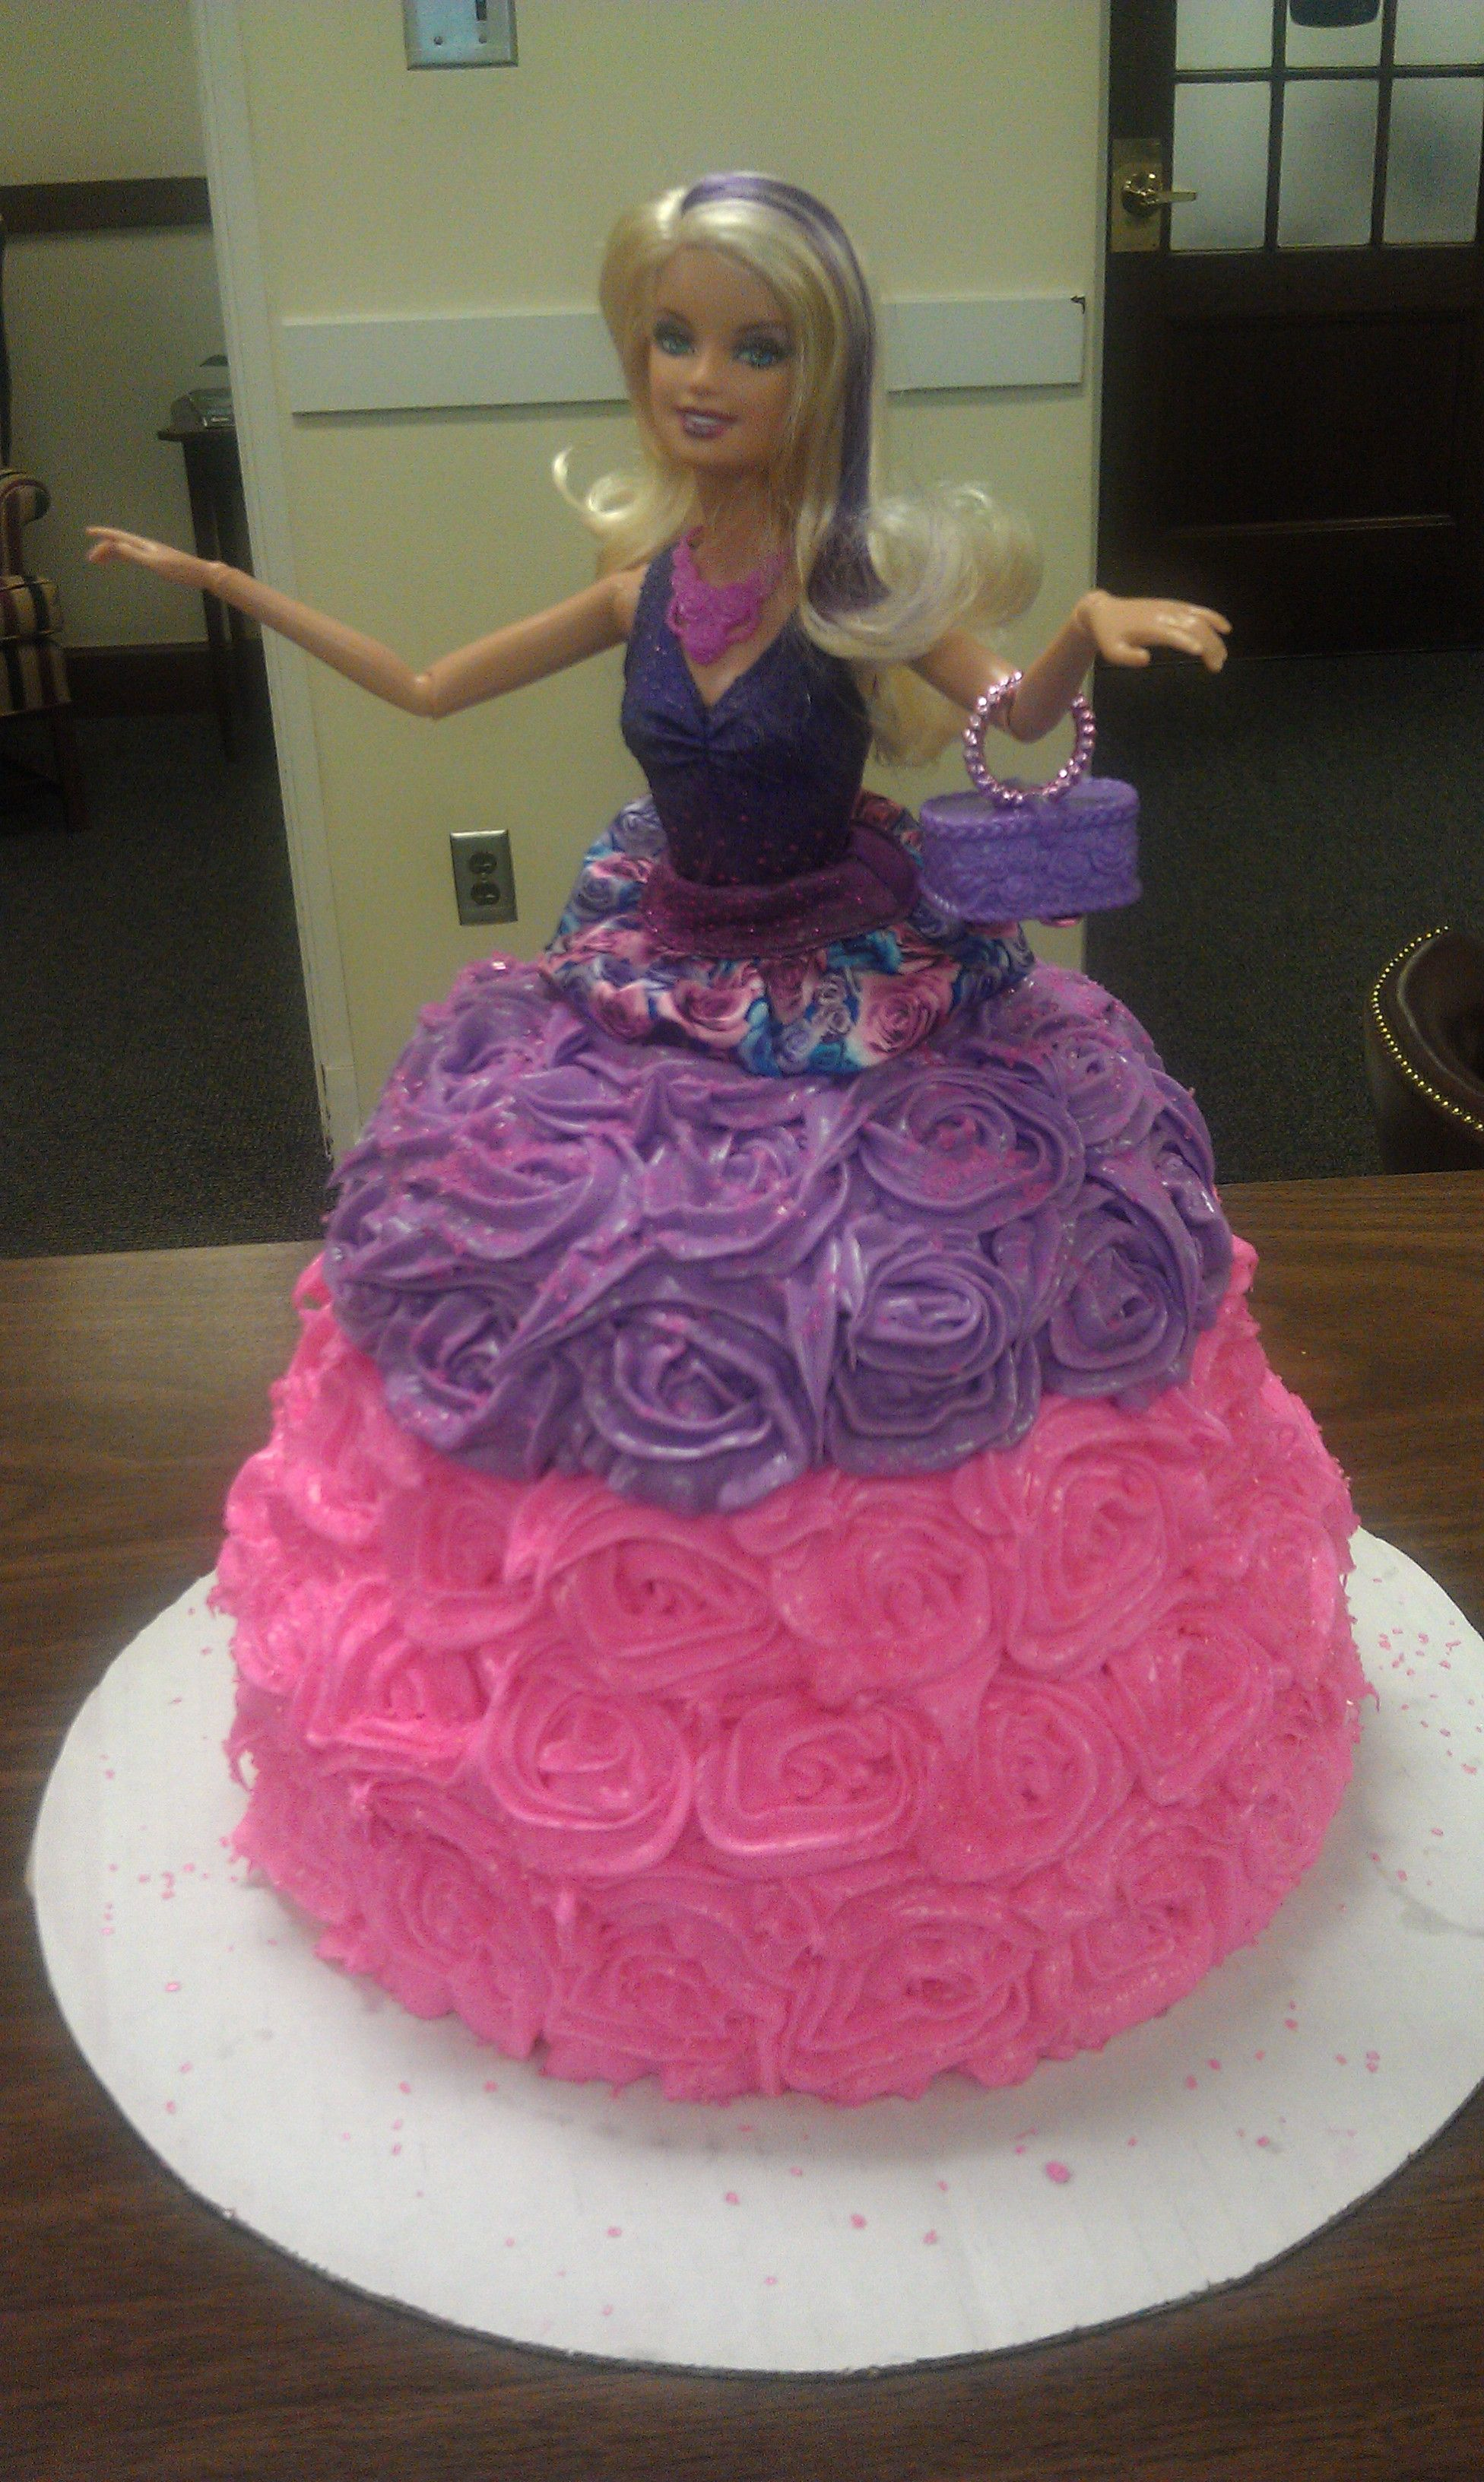 Barbie Doll Cake With Barbie Fashionista Standing On A